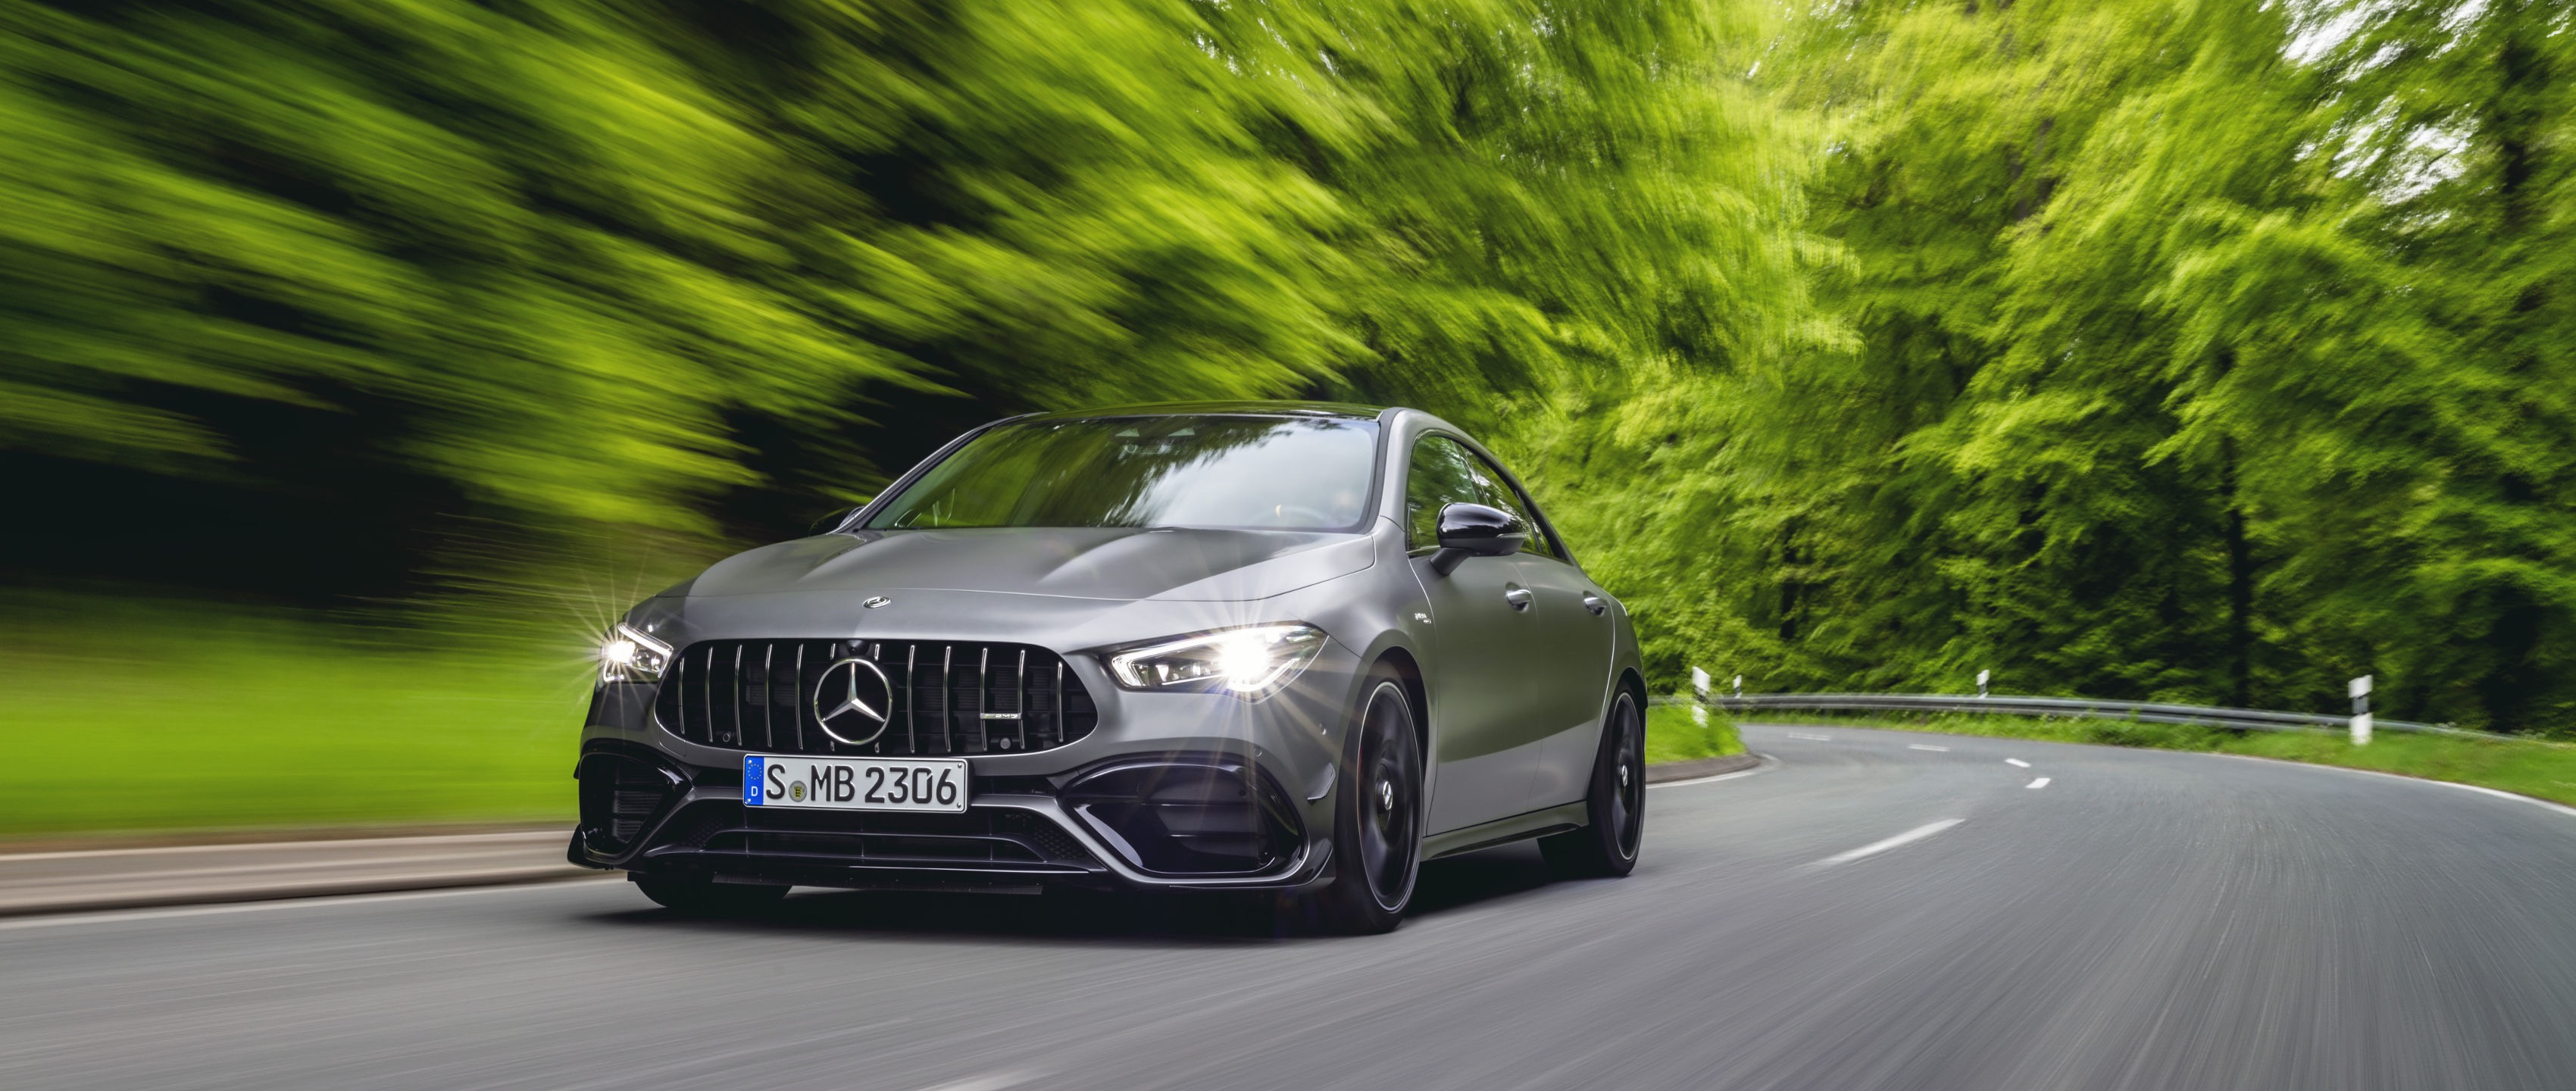 FormaCar: Updated EU engine noise standards urge Mercedes-AMG to hush up